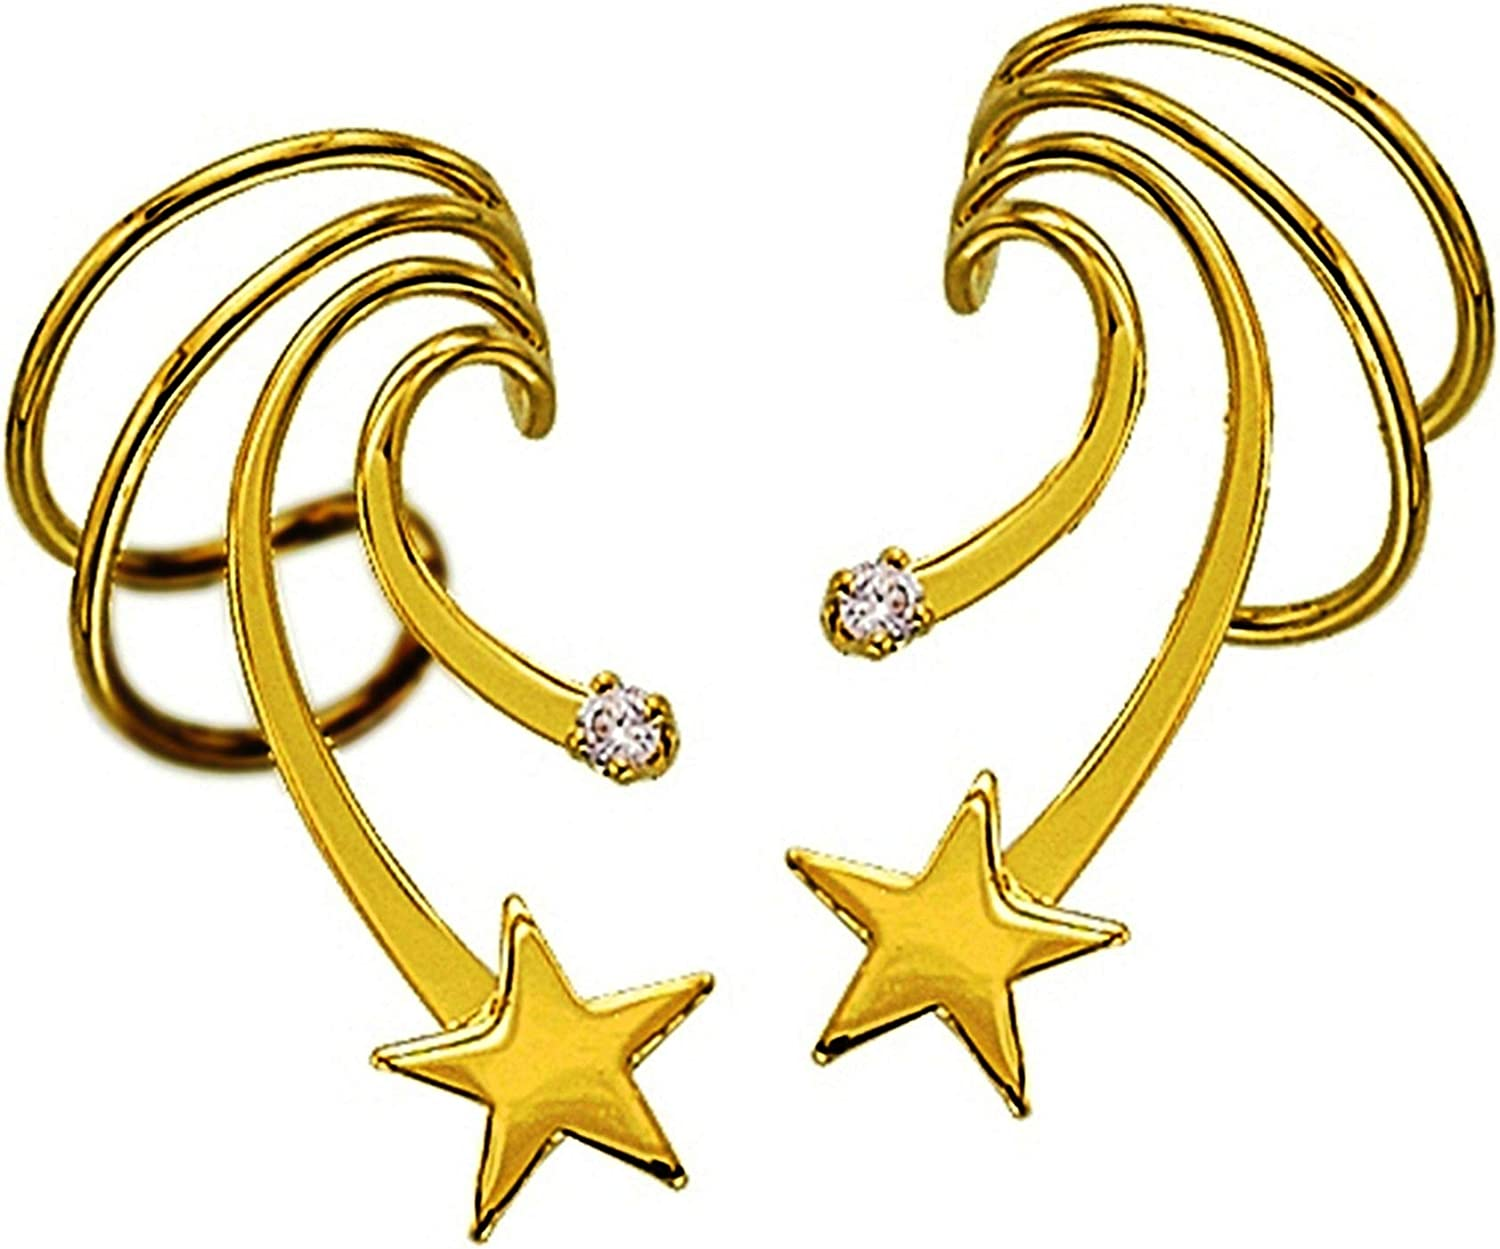 Ear Charms Cuff Star CZ Earring Non-Pierced Rapid rise Free shipping / New Wraps Short Wave